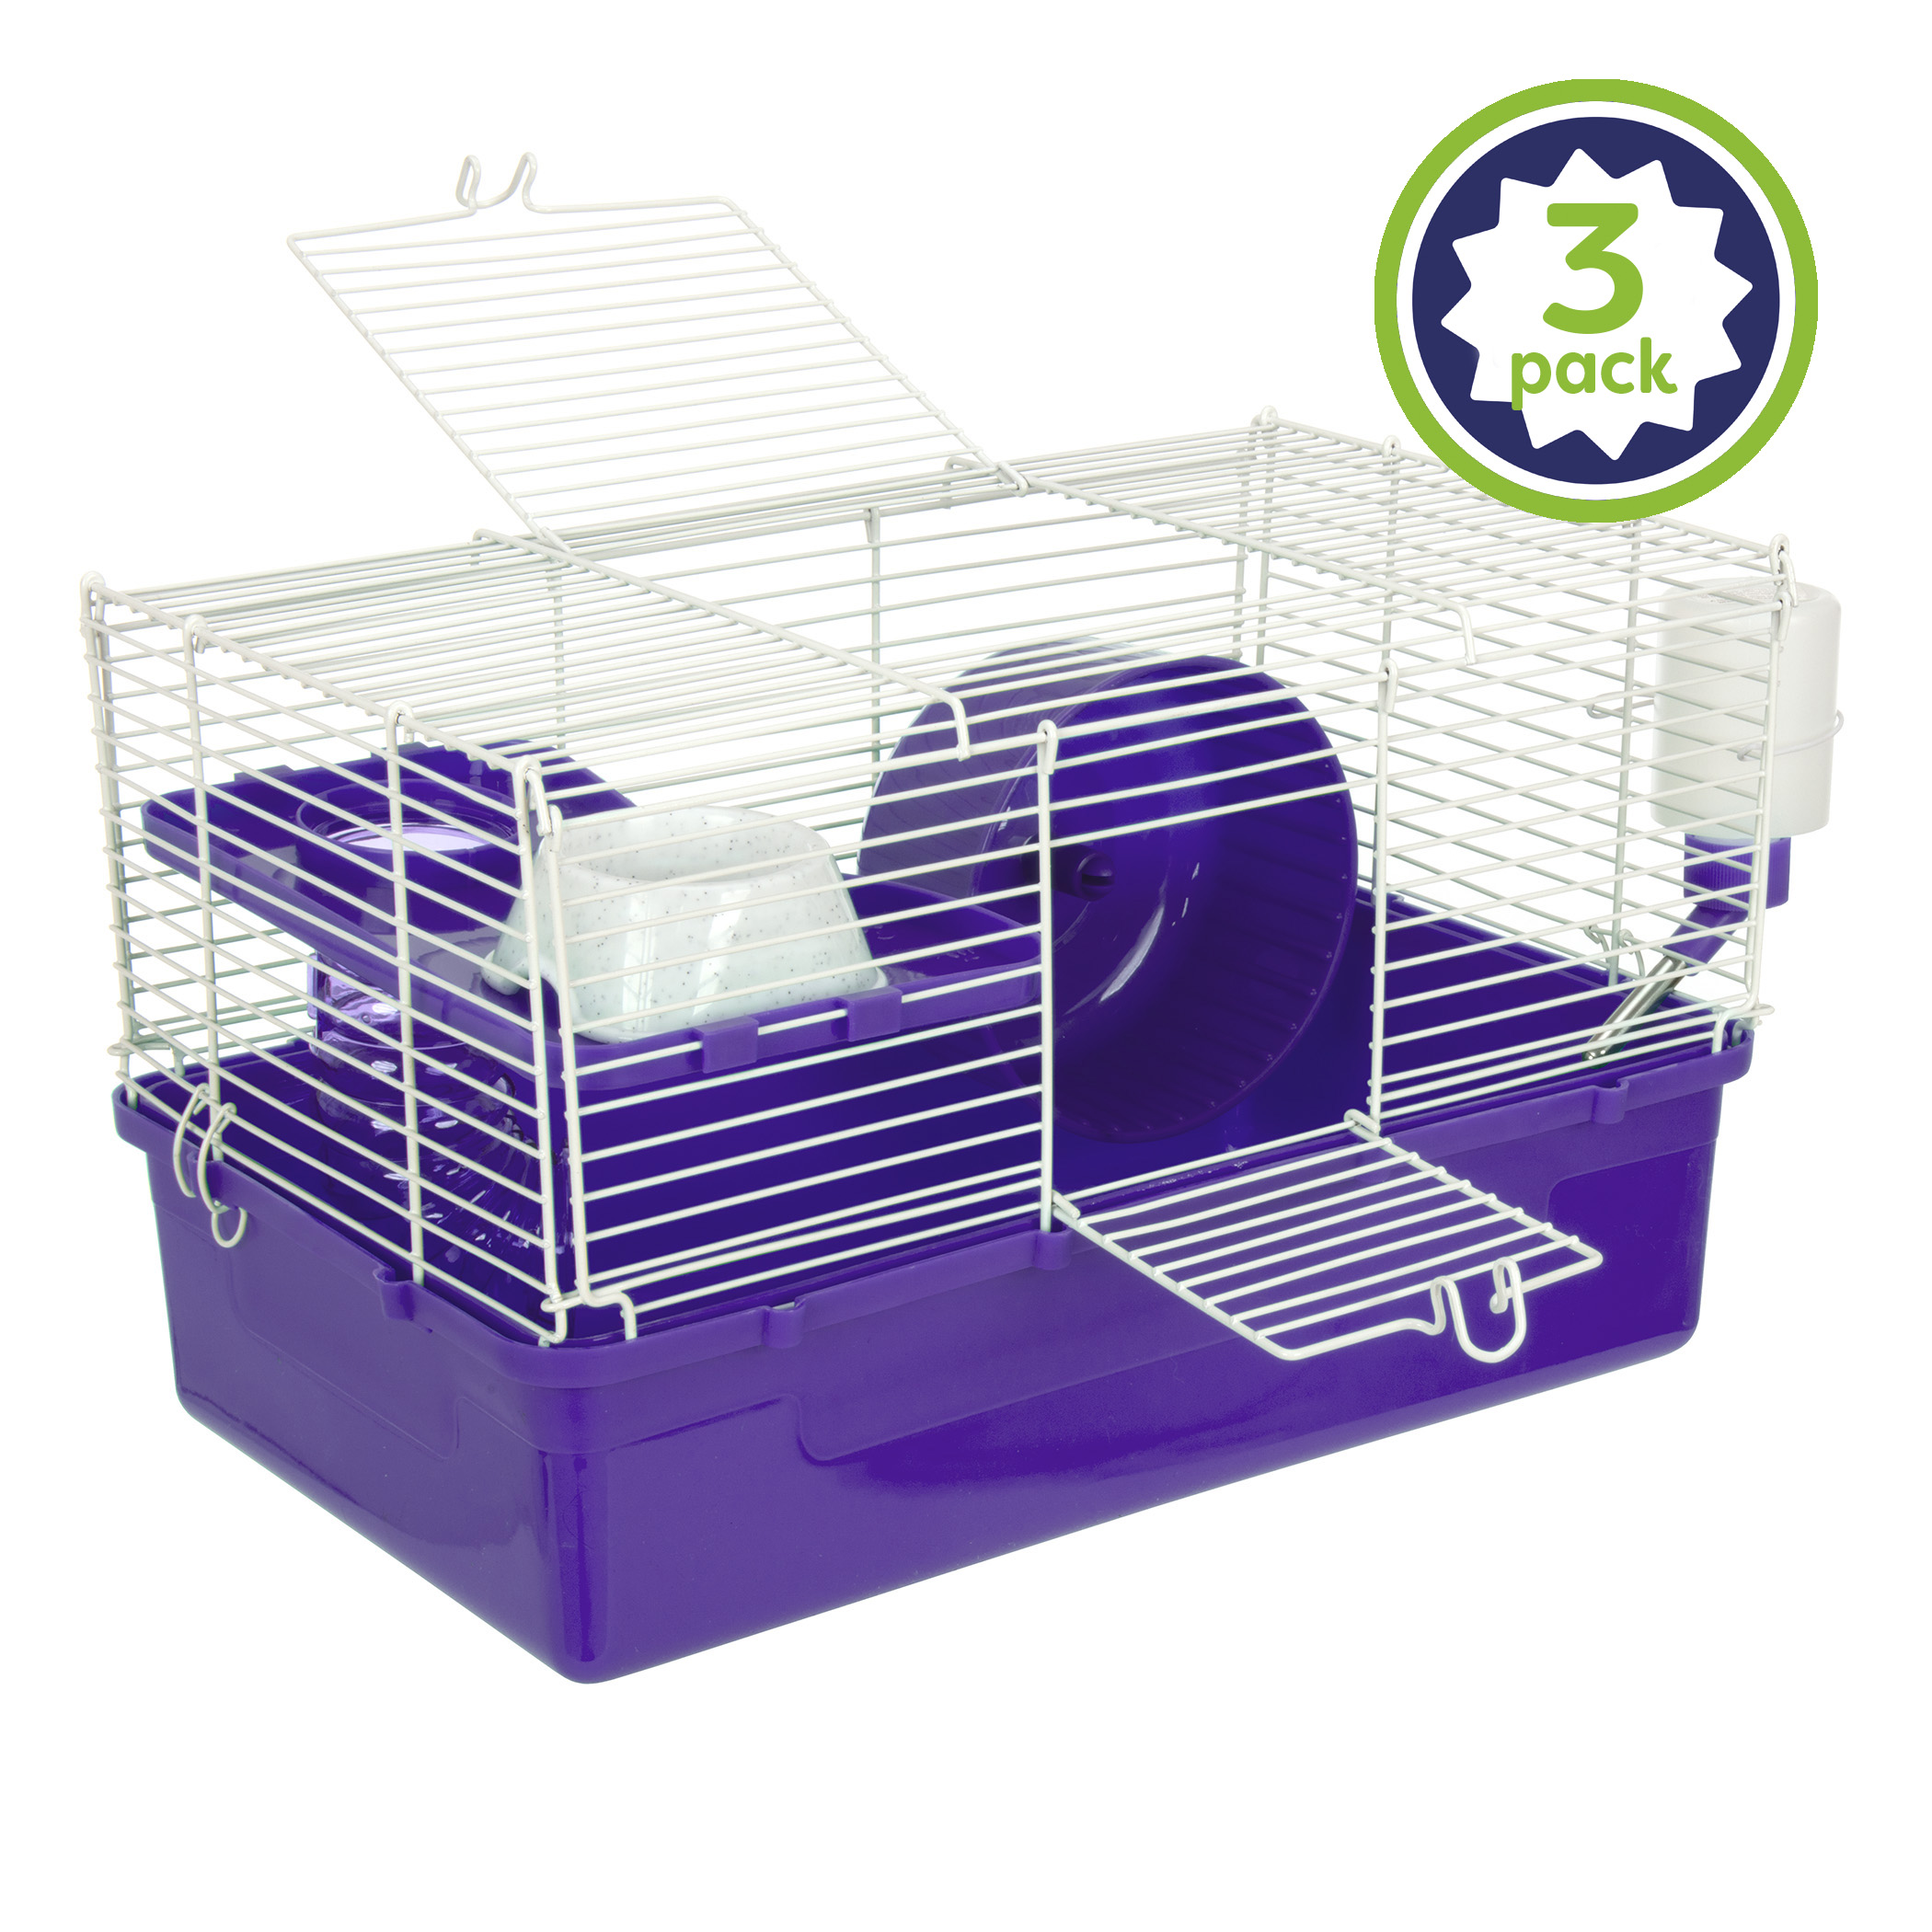 HSH Hamster Cage,1-lvl-Sold 3